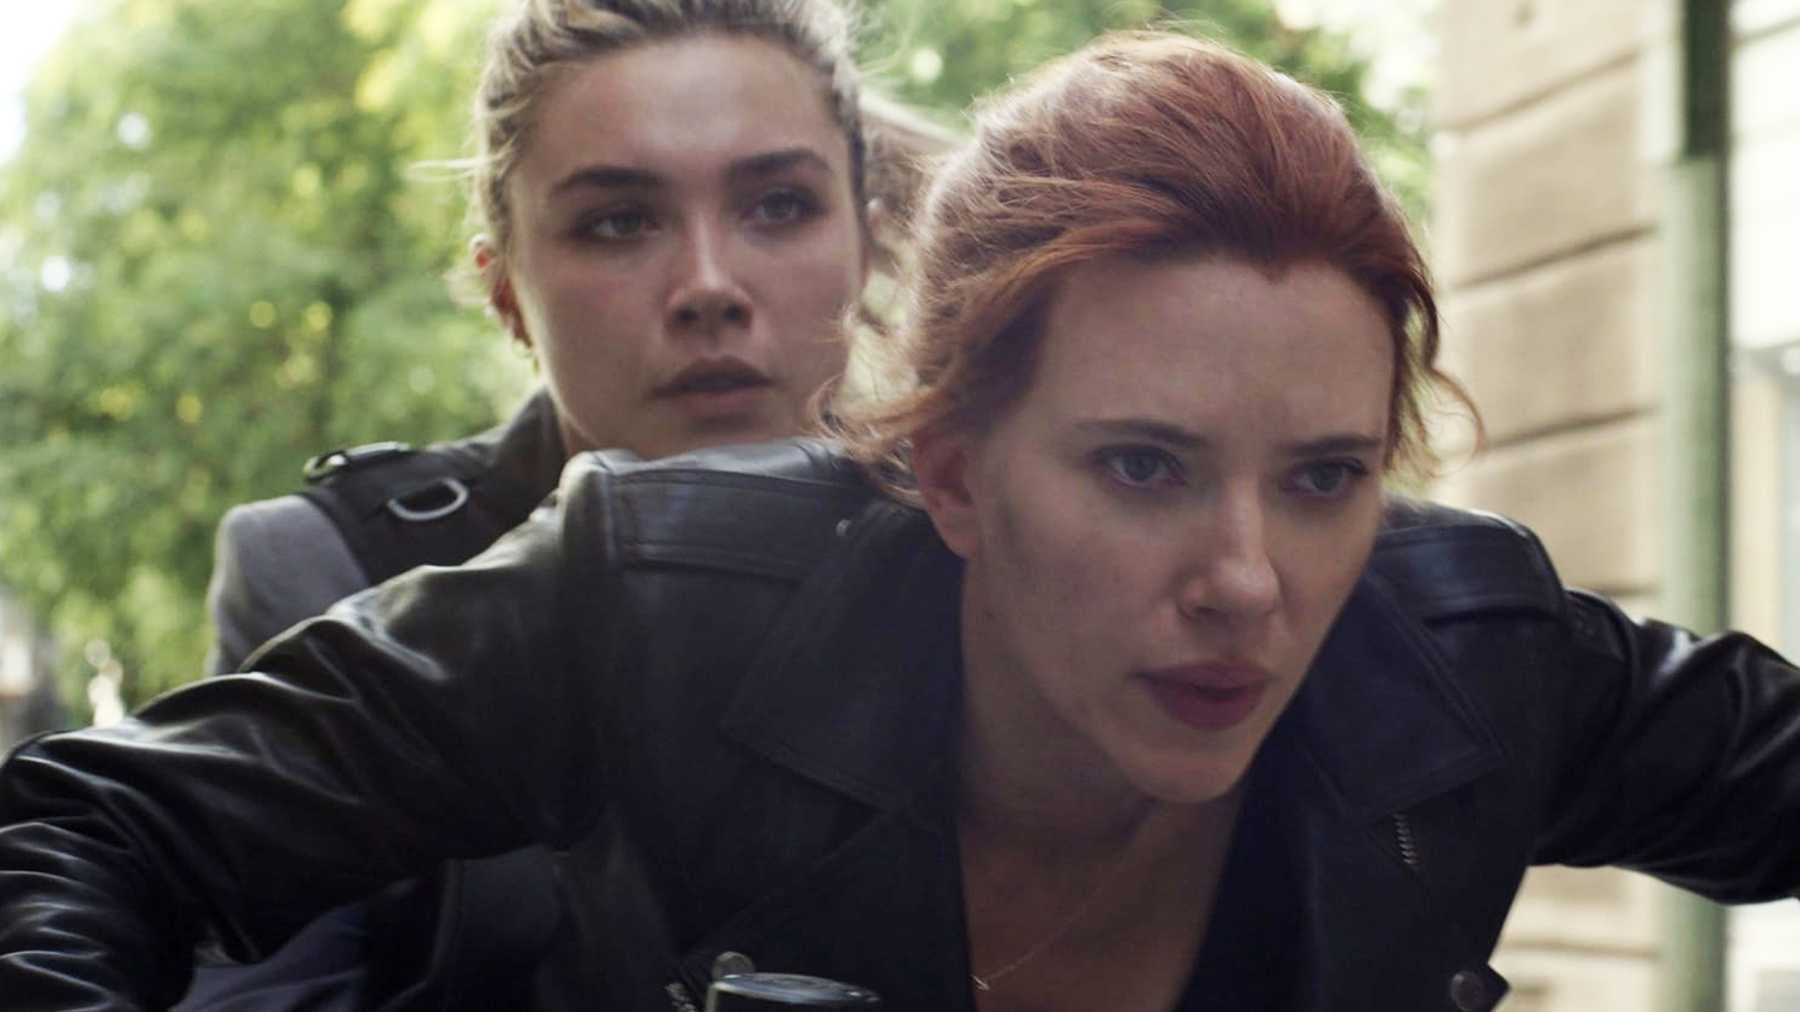 Black Widow Officially Moves To May 2021 As Disney Juggles The MCU Schedule | Movies | Empire